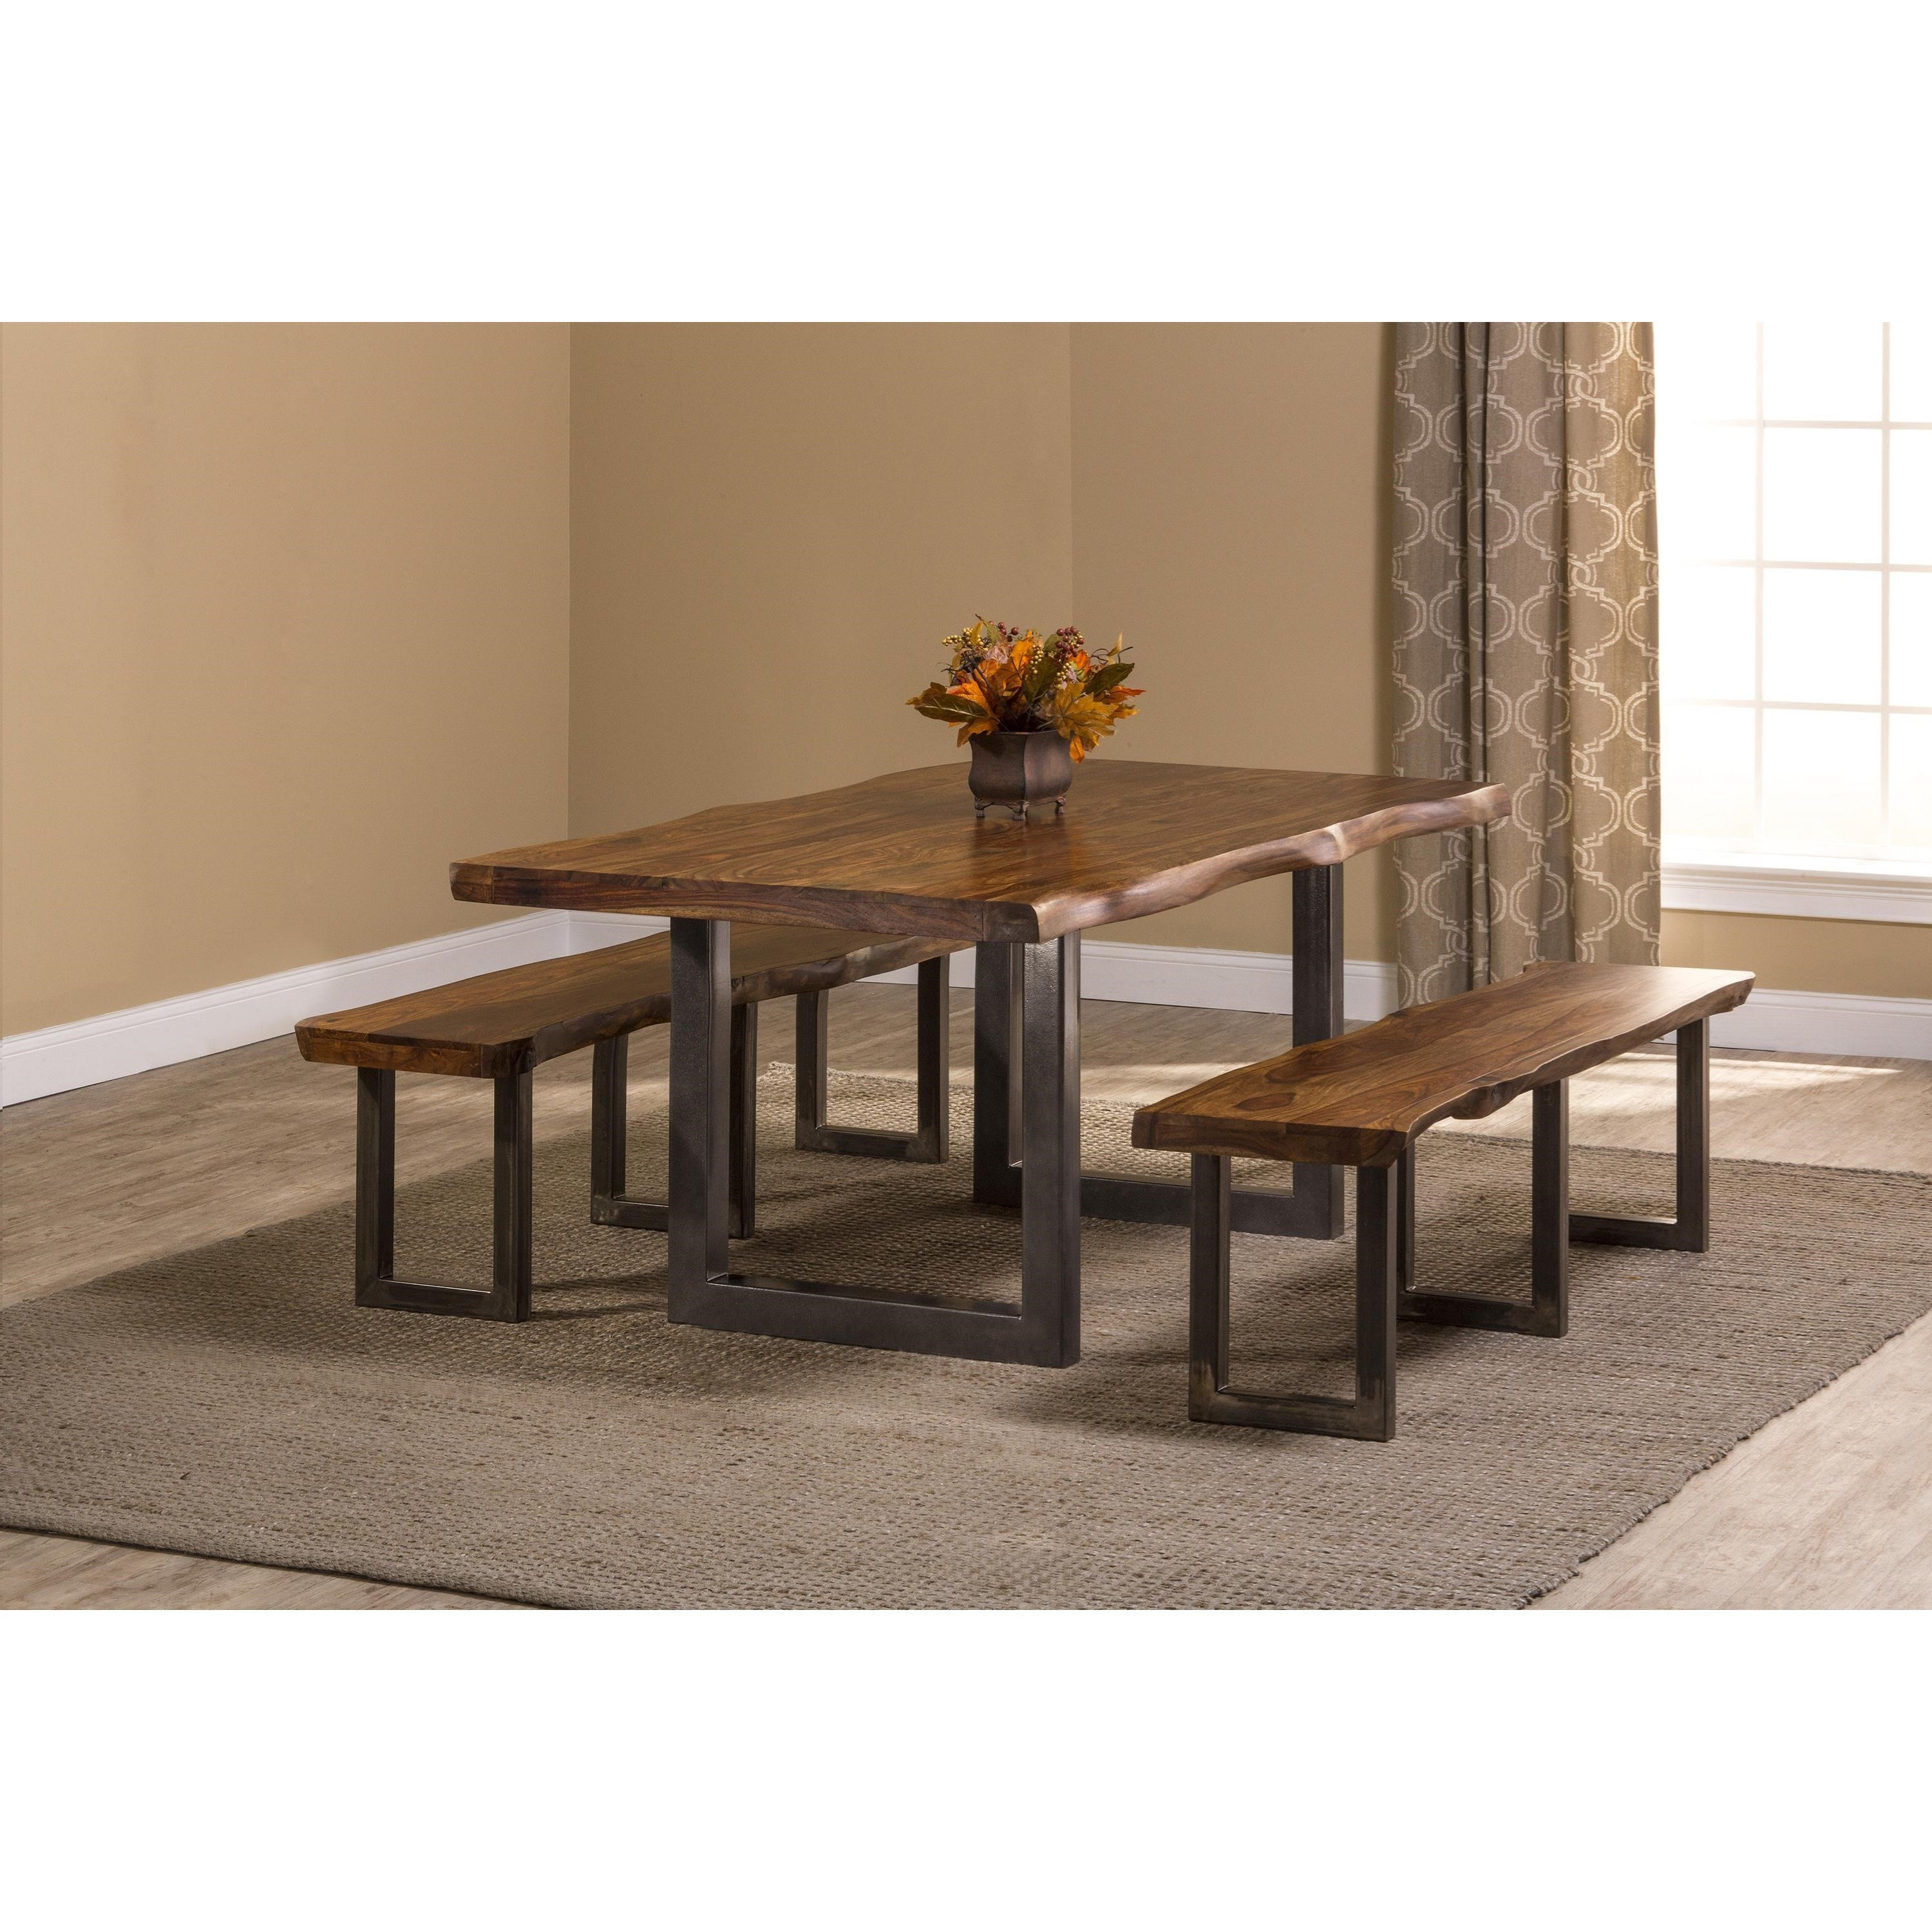 Rectangle Dining Table With Bench: Hillsdale Emerson Natural Sheesham Wood Rectangular Dining